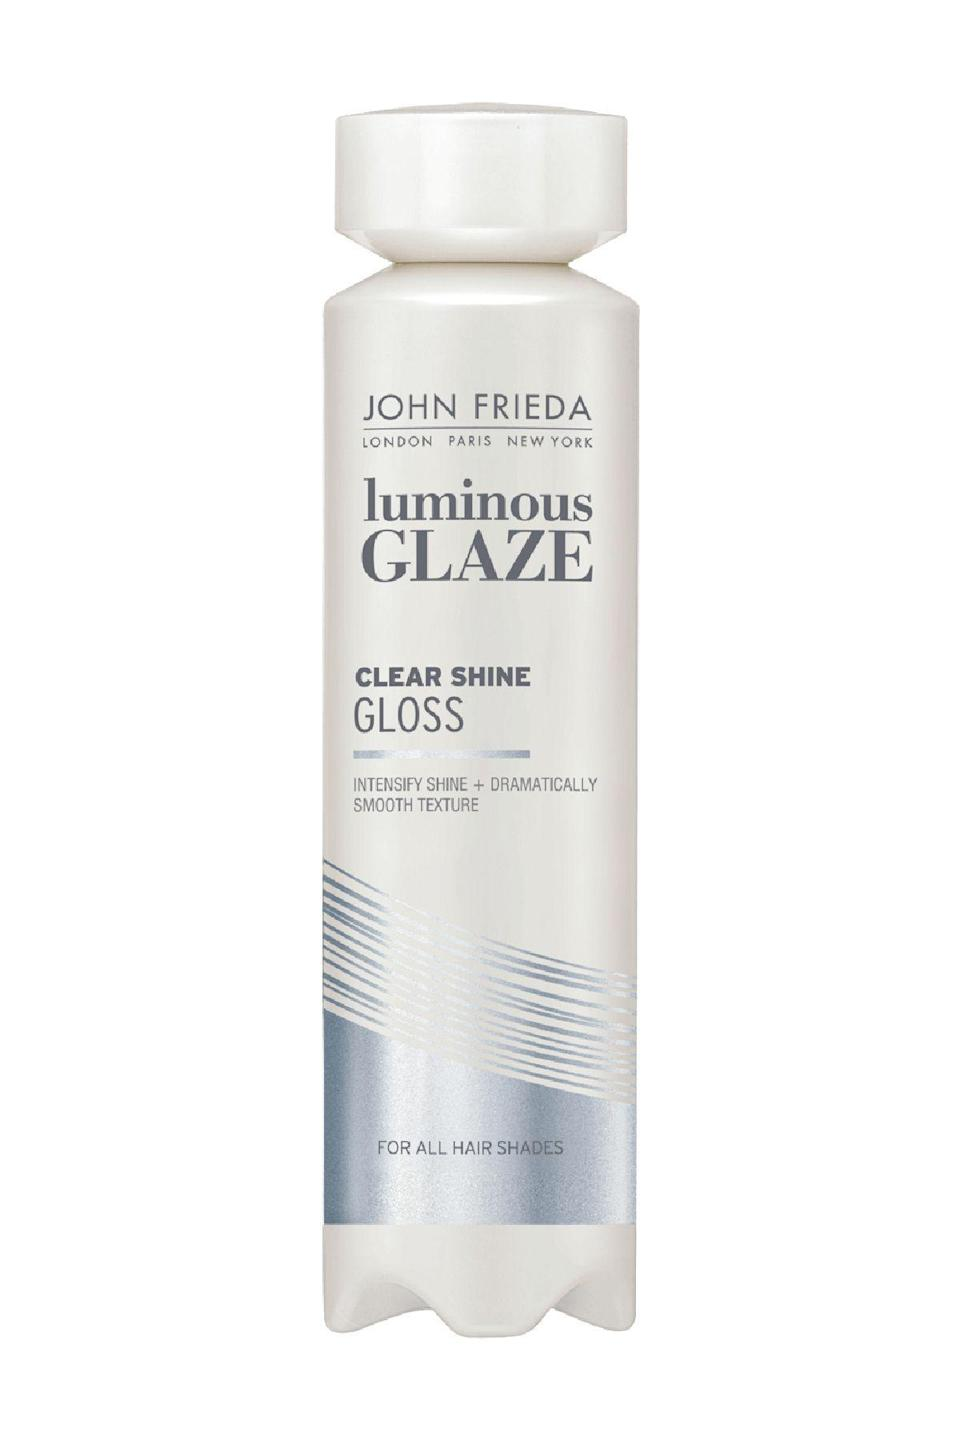 "<p><strong>John Frieda</strong></p><p>ulta.com</p><p><strong>$11.99</strong></p><p><a href=""https://go.redirectingat.com?id=74968X1596630&url=https%3A%2F%2Fwww.ulta.com%2Fluminous-color-glaze-clear-shine%3FproductId%3DxlsImpprod620050&sref=https%3A%2F%2Fwww.marieclaire.com%2Fbeauty%2Fhair%2Fg36039186%2Fbest-hair-gloss%2F"" rel=""nofollow noopener"" target=""_blank"" data-ylk=""slk:SHOP IT"" class=""link rapid-noclick-resp"">SHOP IT</a></p><p>You could use this at the end of a shower for enhanced shine, whether your hair is color-treated, balayaged, or au natural. The other option is working the gel into completely dry strands and leaving it on twenty minutes. The effect? Luminous. </p>"